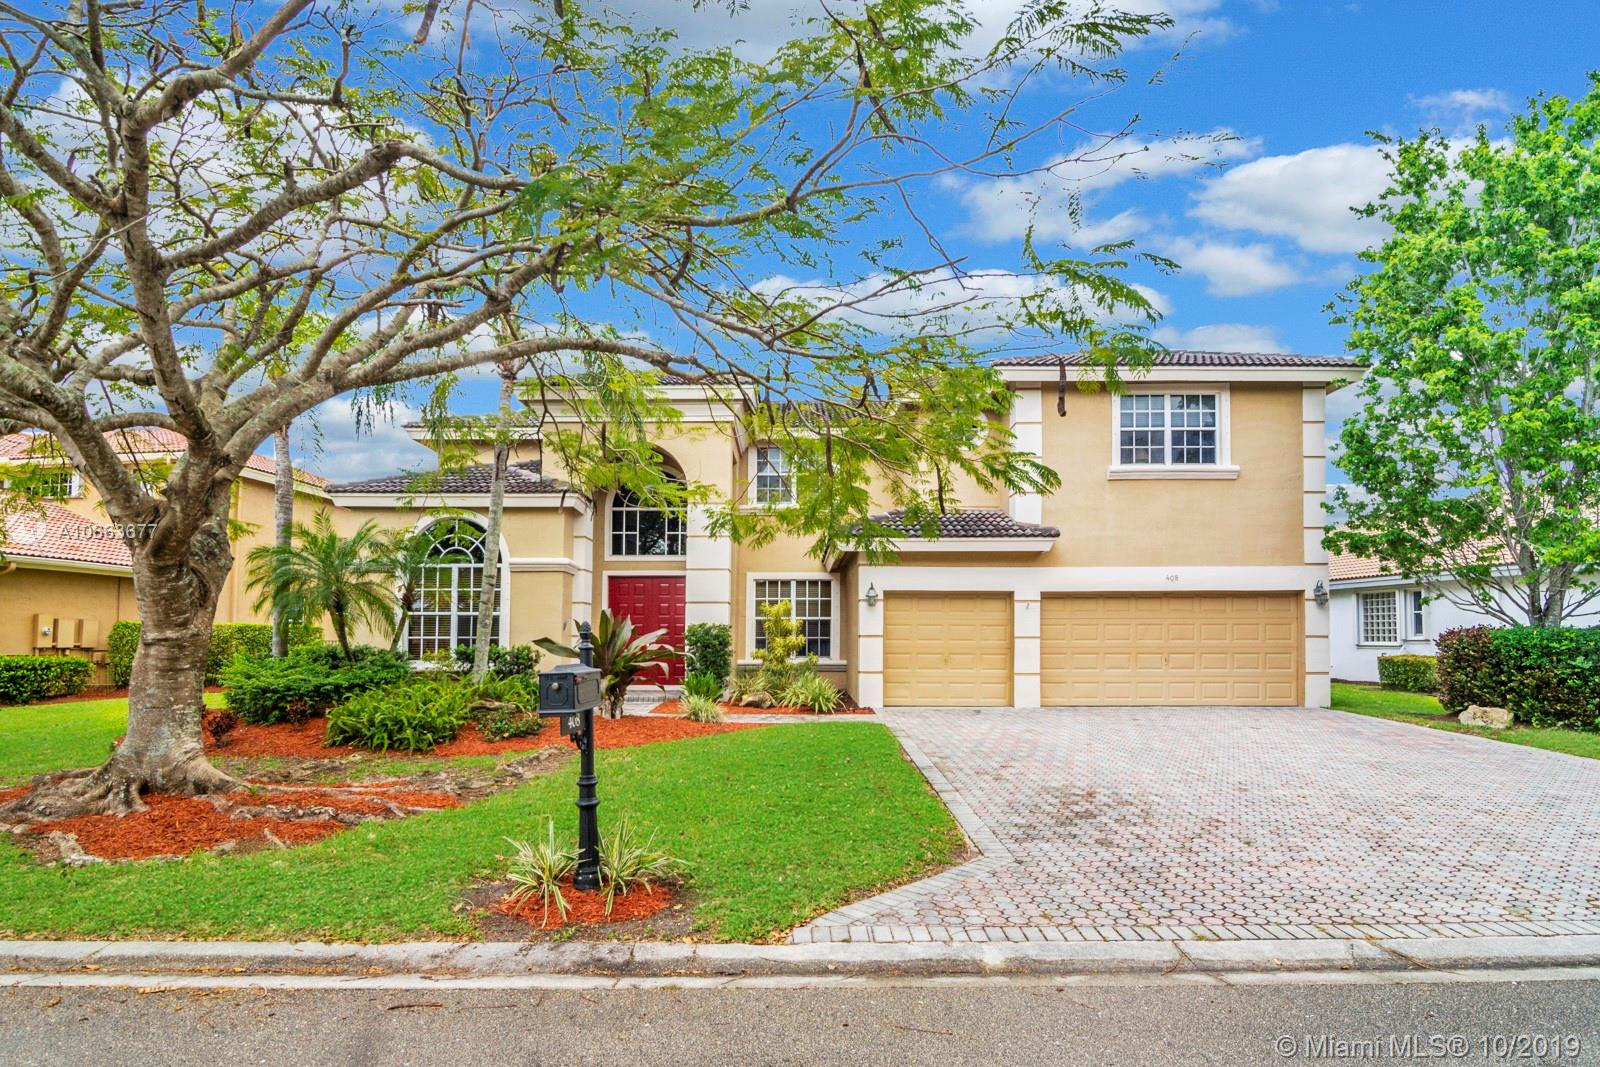 408 NW 120th Dr, Coral Springs, FL 33071